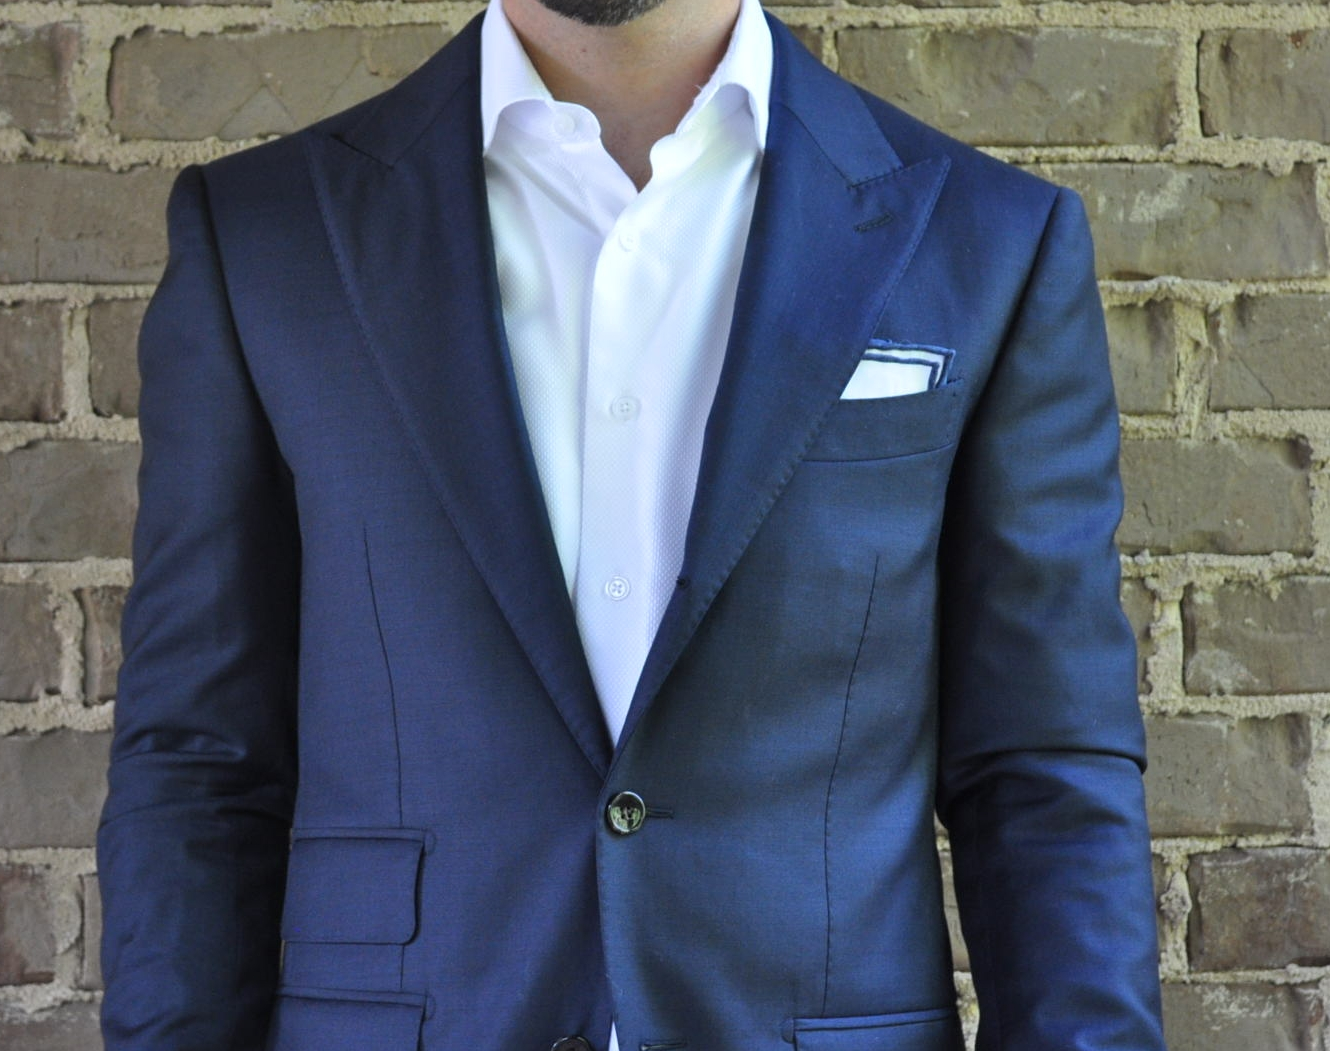 With a simple outfit, adding a simple pocket square will really set your look apart. -